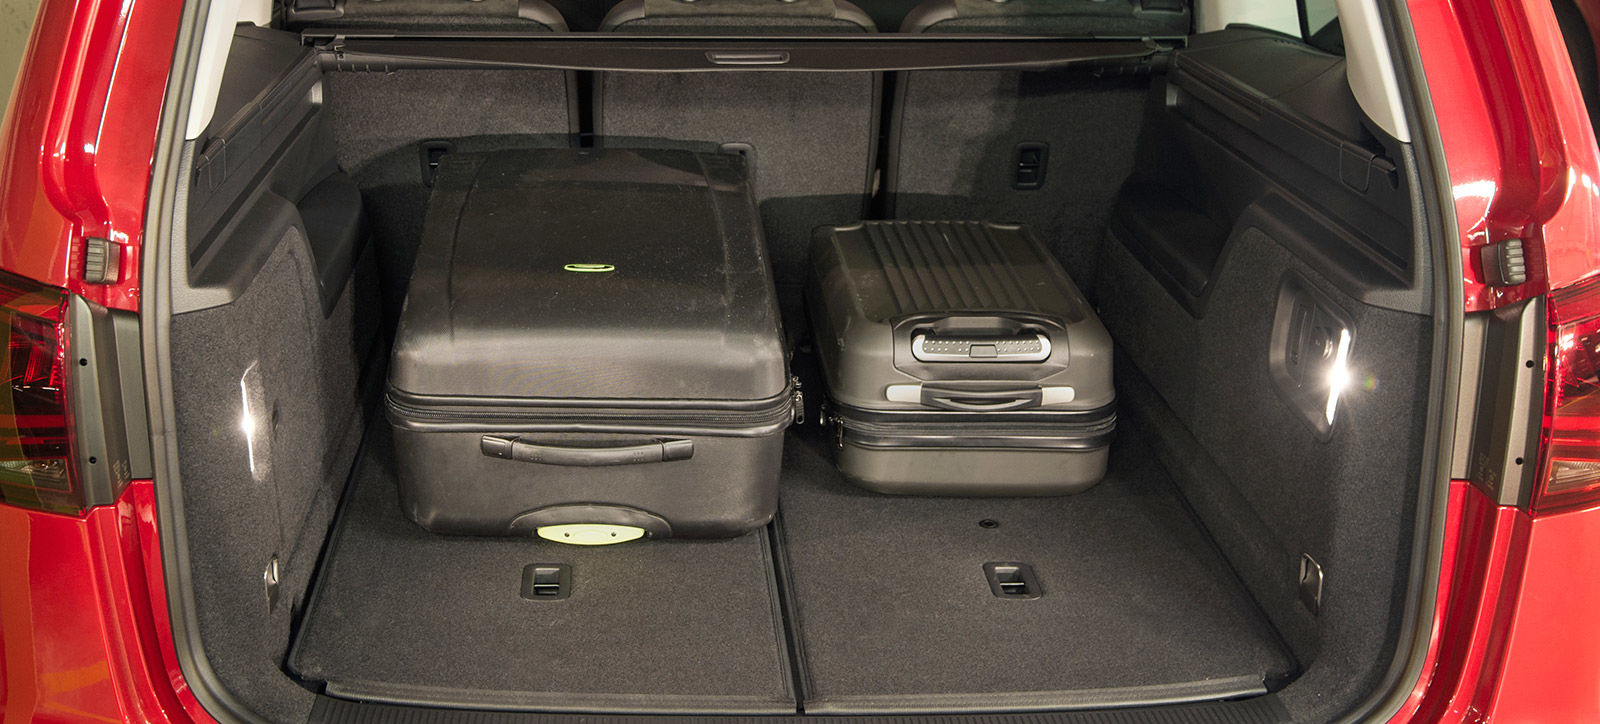 Image Result For Audi A Sportback Luggage Capacity